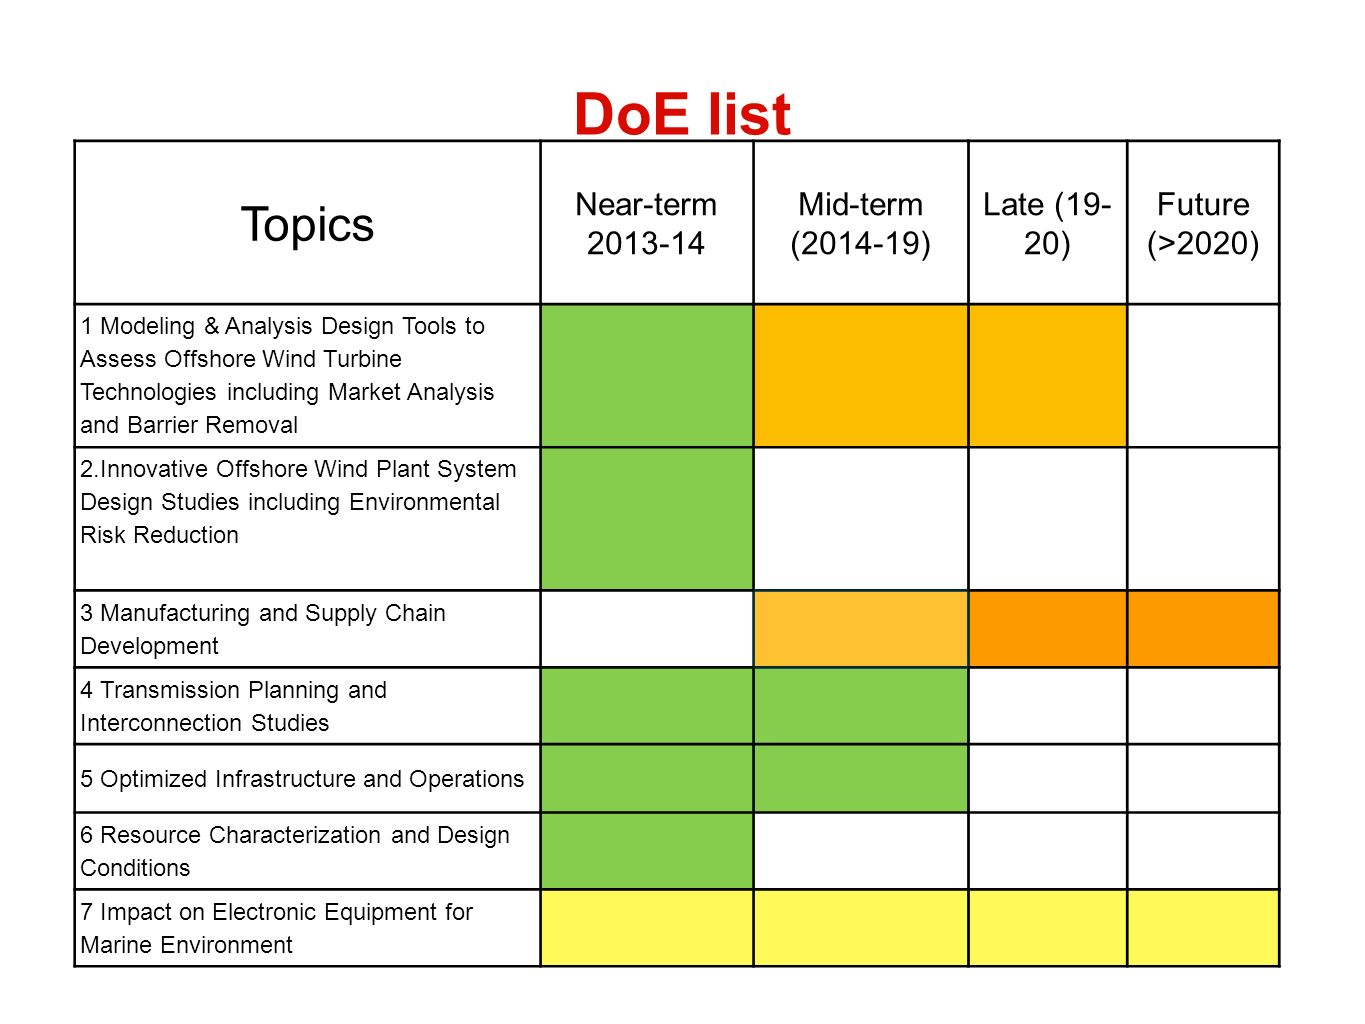 DoE list Topics Near-term 2013-14 Mid-term (2014-19) Late (19- 20) Future (>2020) 1 Modeling & Analysis Design Tools to Assess Offshore Wind Turbine Technologies including Market Analysis and Barrier Removal 2.Innovative Offshore Wind Plant System Design Studies including Environmental Risk Reduction 3 Manufacturing and Supply Chain Development 4 Transmission Planning and Interconnection Studies 5 Optimized Infrastructure and Operations 6 Resource Characterization and Design Conditions 7 Impact on Electronic Equipment for Marine Environment